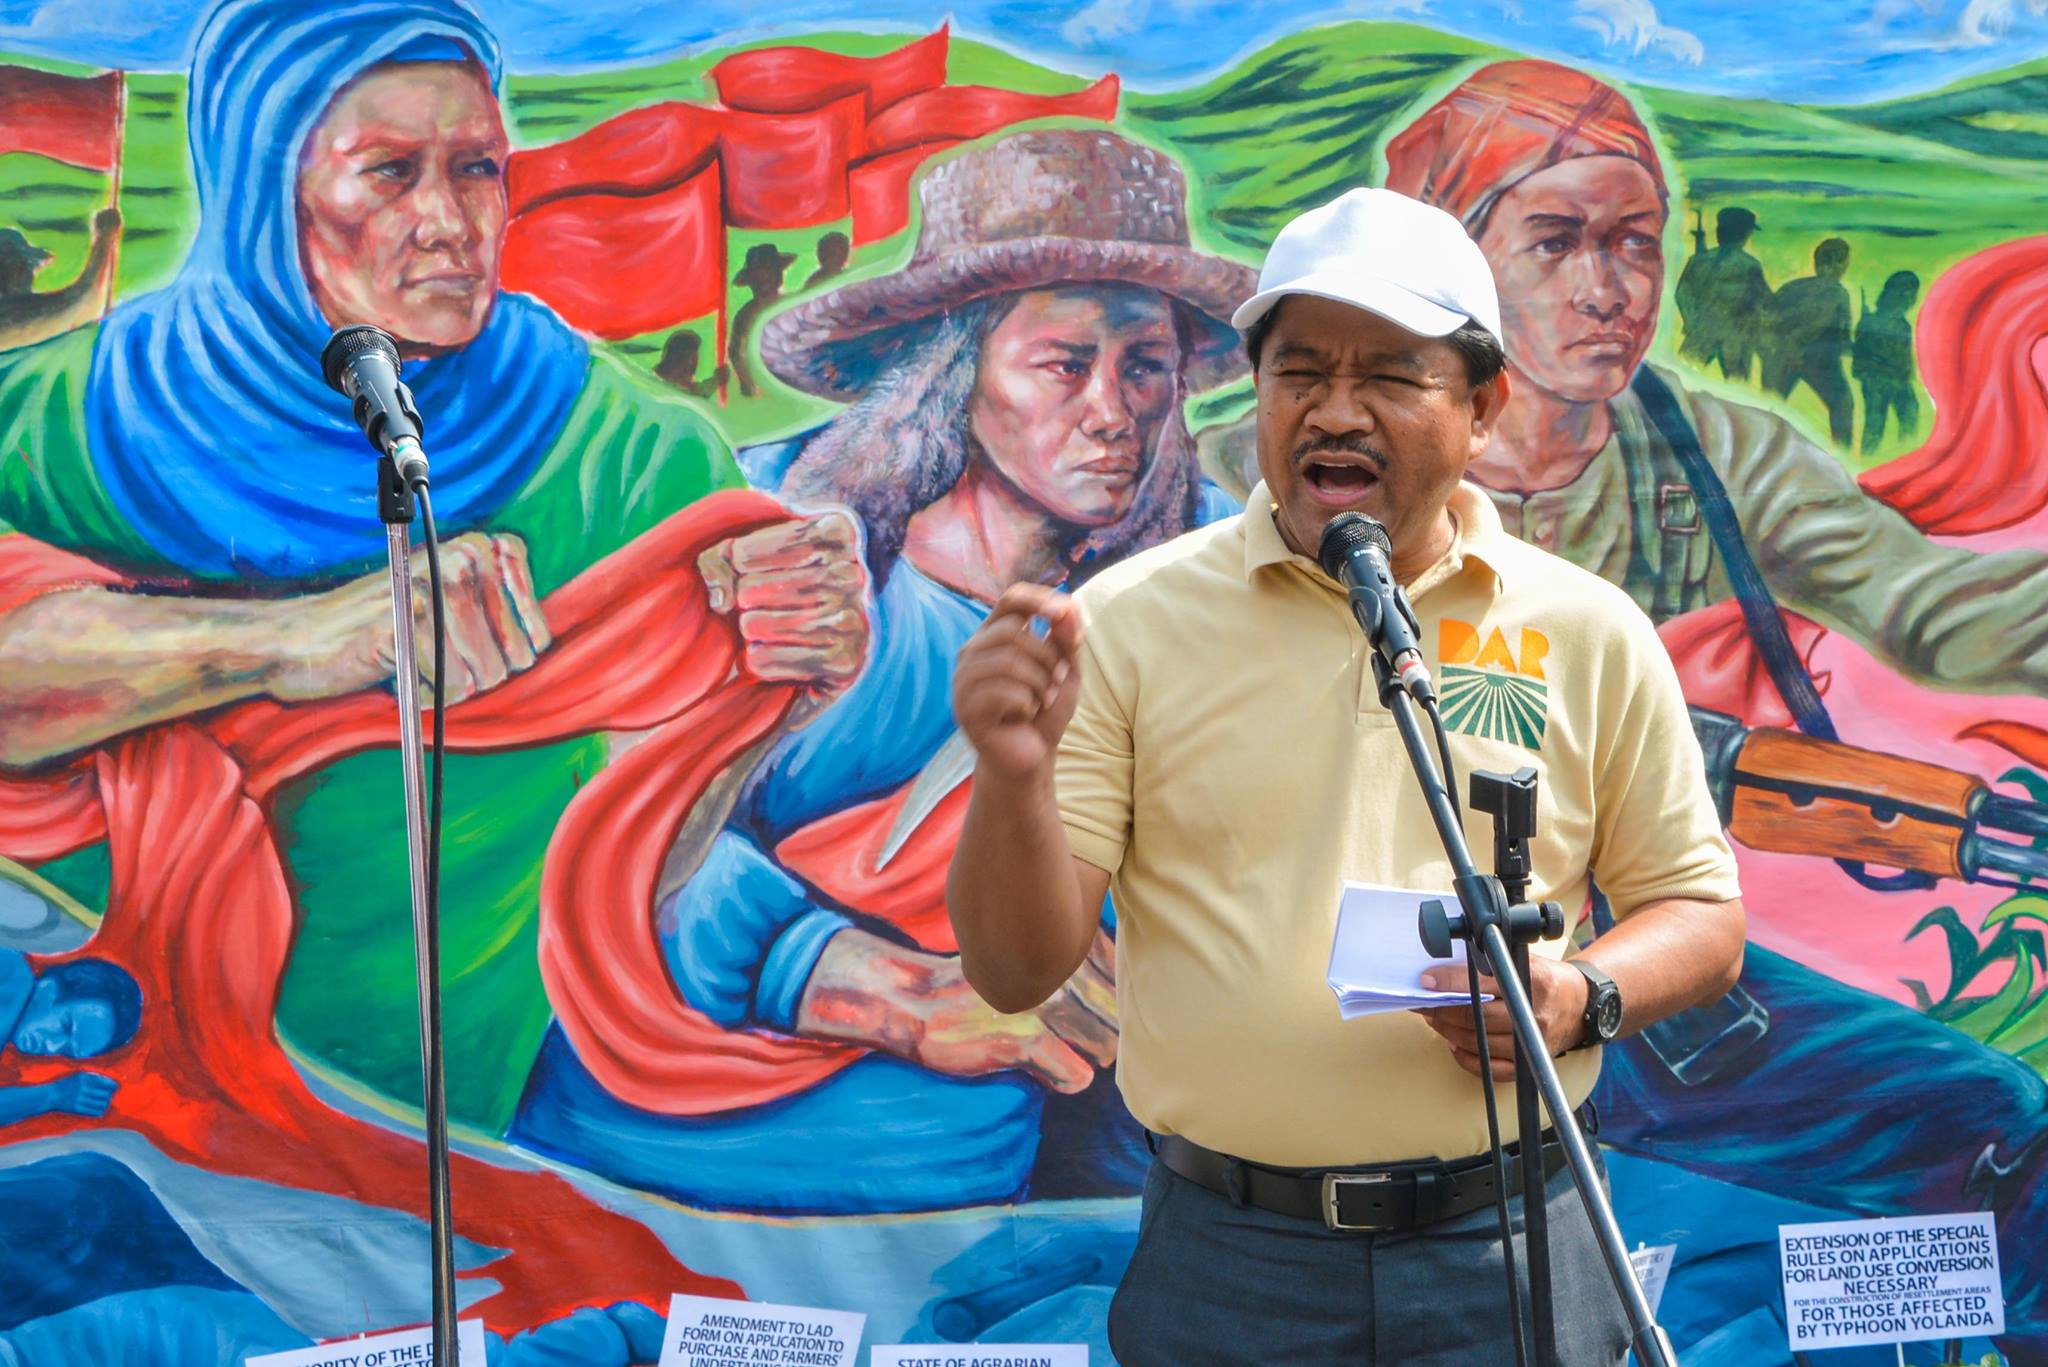 Presidential Spokesperson Ernesto Abella said the Palace is pleased that Department of Social Welfare and Development Sec. Judy Taguiwalo, Department of Agrarian Reform Sec. Rafael Mariano (Pictured) and National Anti-Poverty Commission Lead Convenor Sec. Liza Maza decided to stay despite the scrapping of peace talks with Communist Party of the Philippines-New People's Army-National Democratic Front of the Philippines (CPP-NPA-NDFP). (Photo: Rafael Mariano/ Facebook)